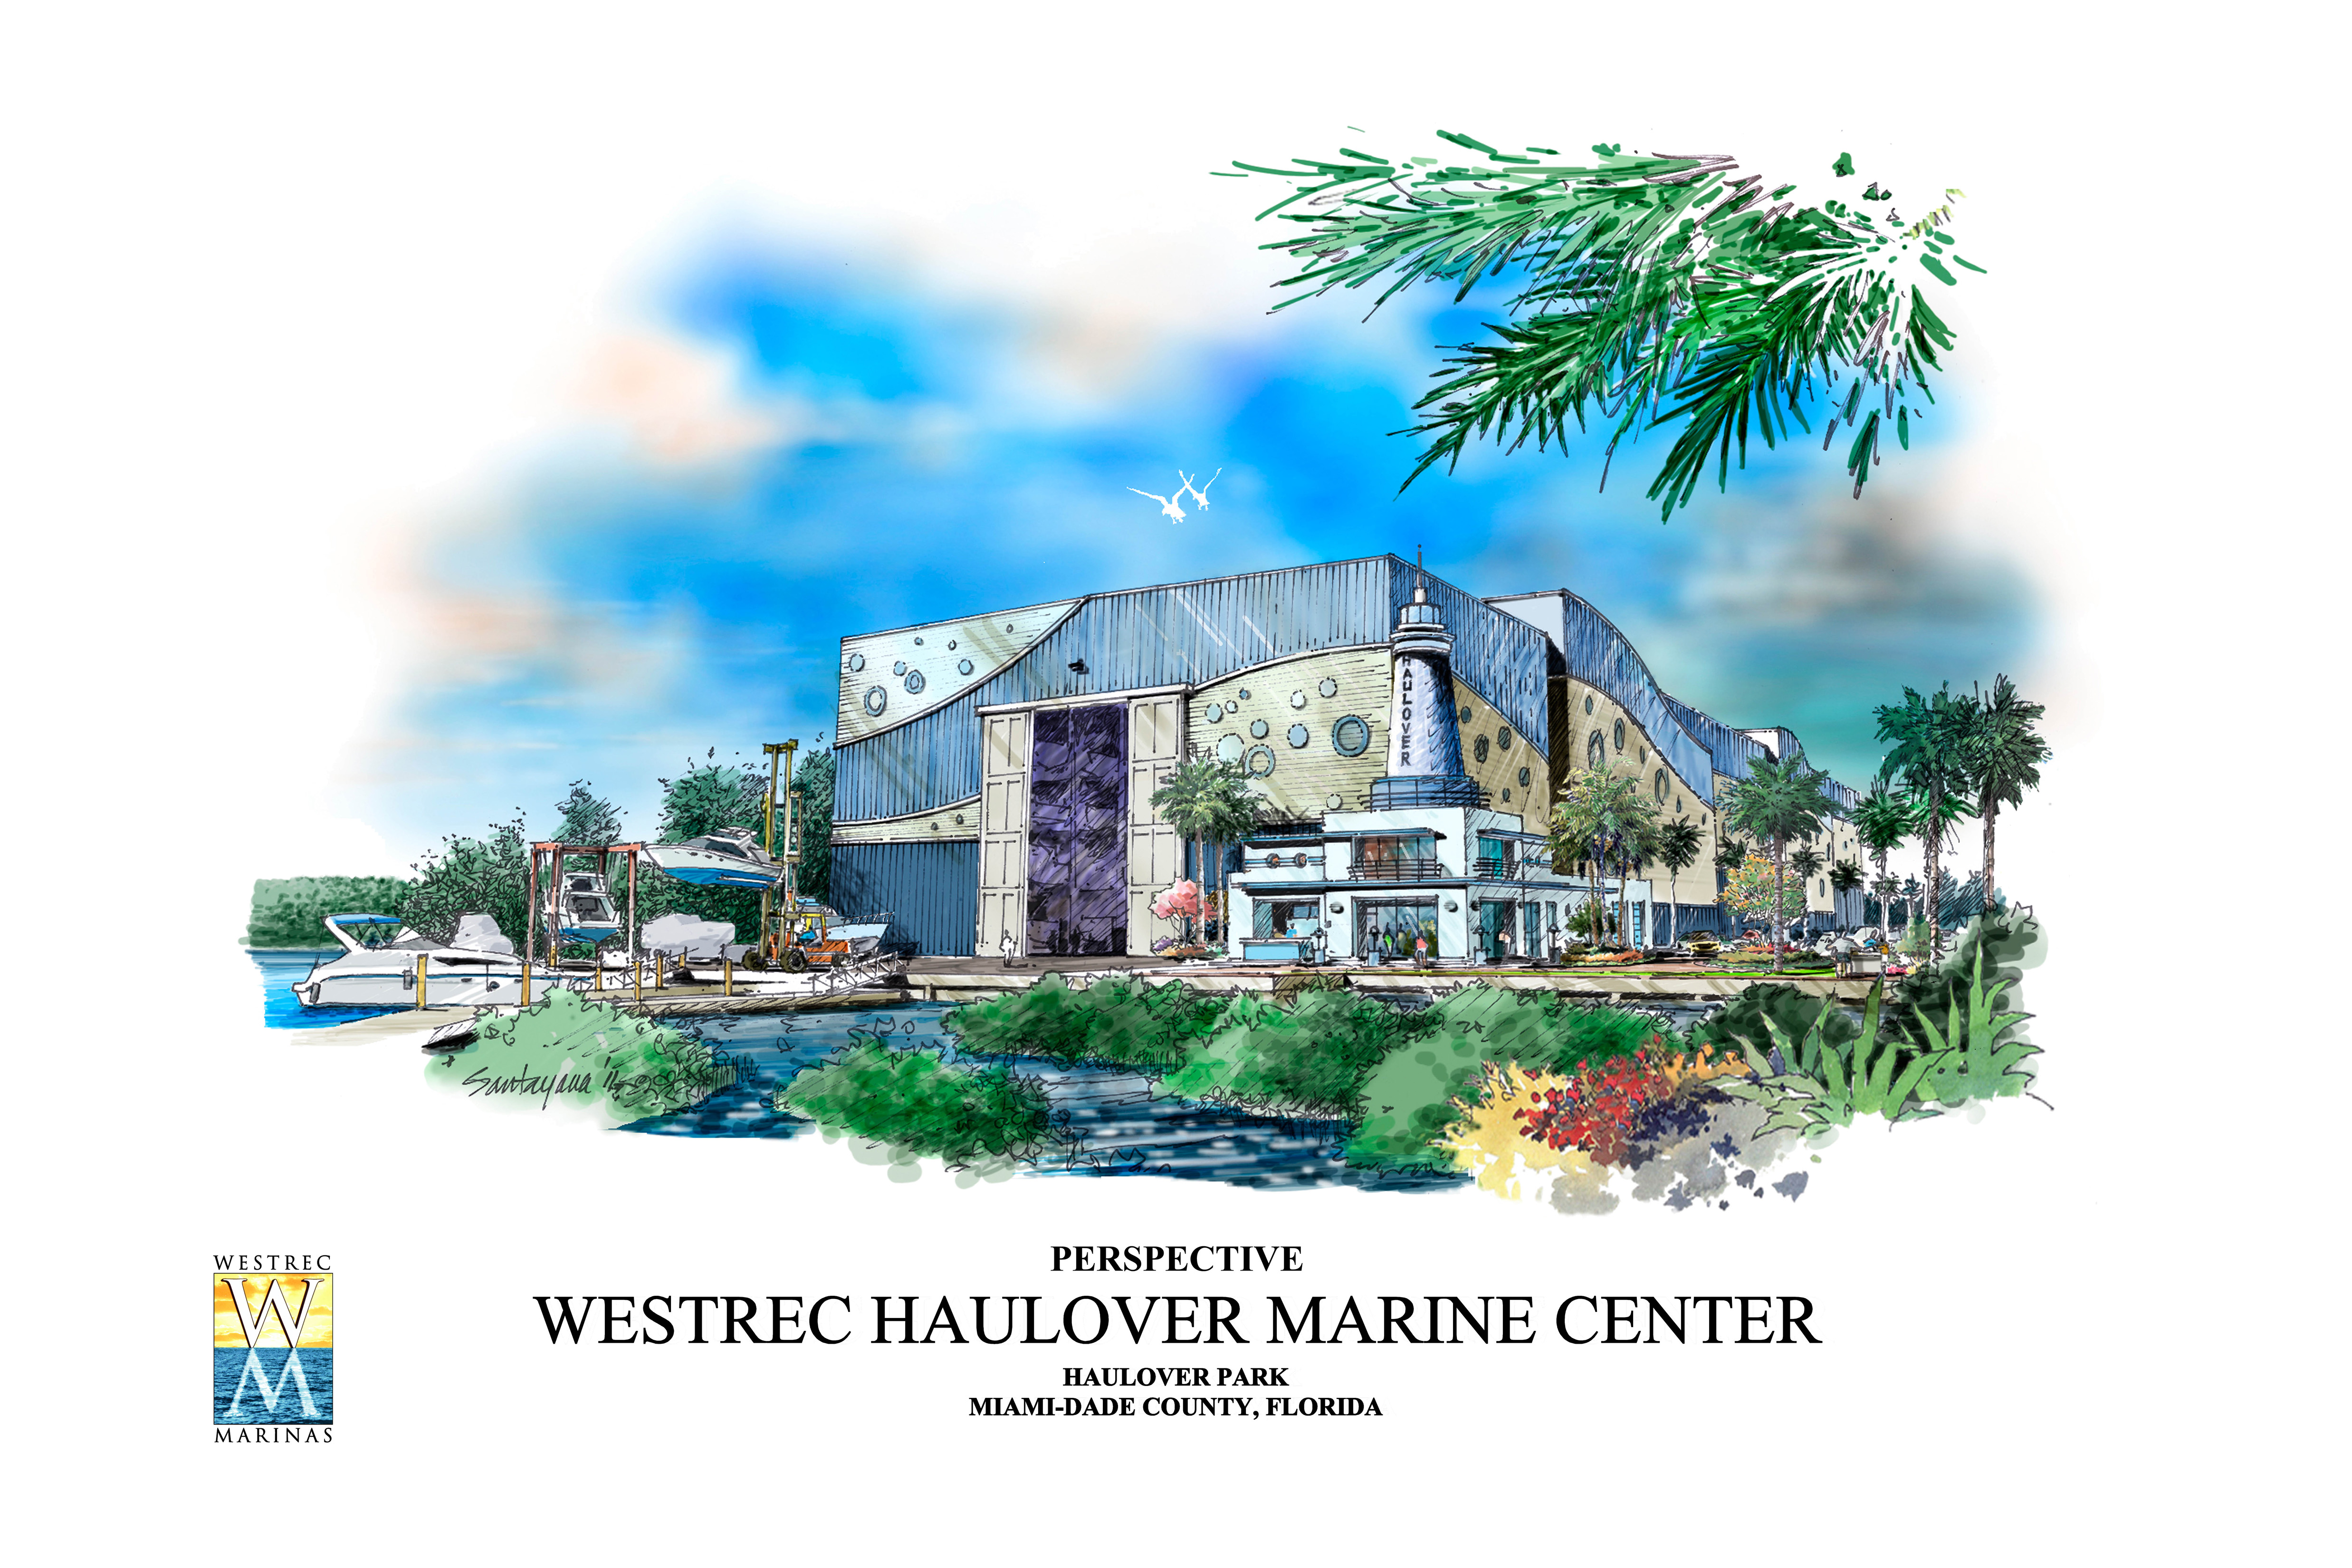 a rendering of the new Haulover Marine Center and future home of Xtreme Powerboats. Photo Credit: Courtesy Westrec Marinas